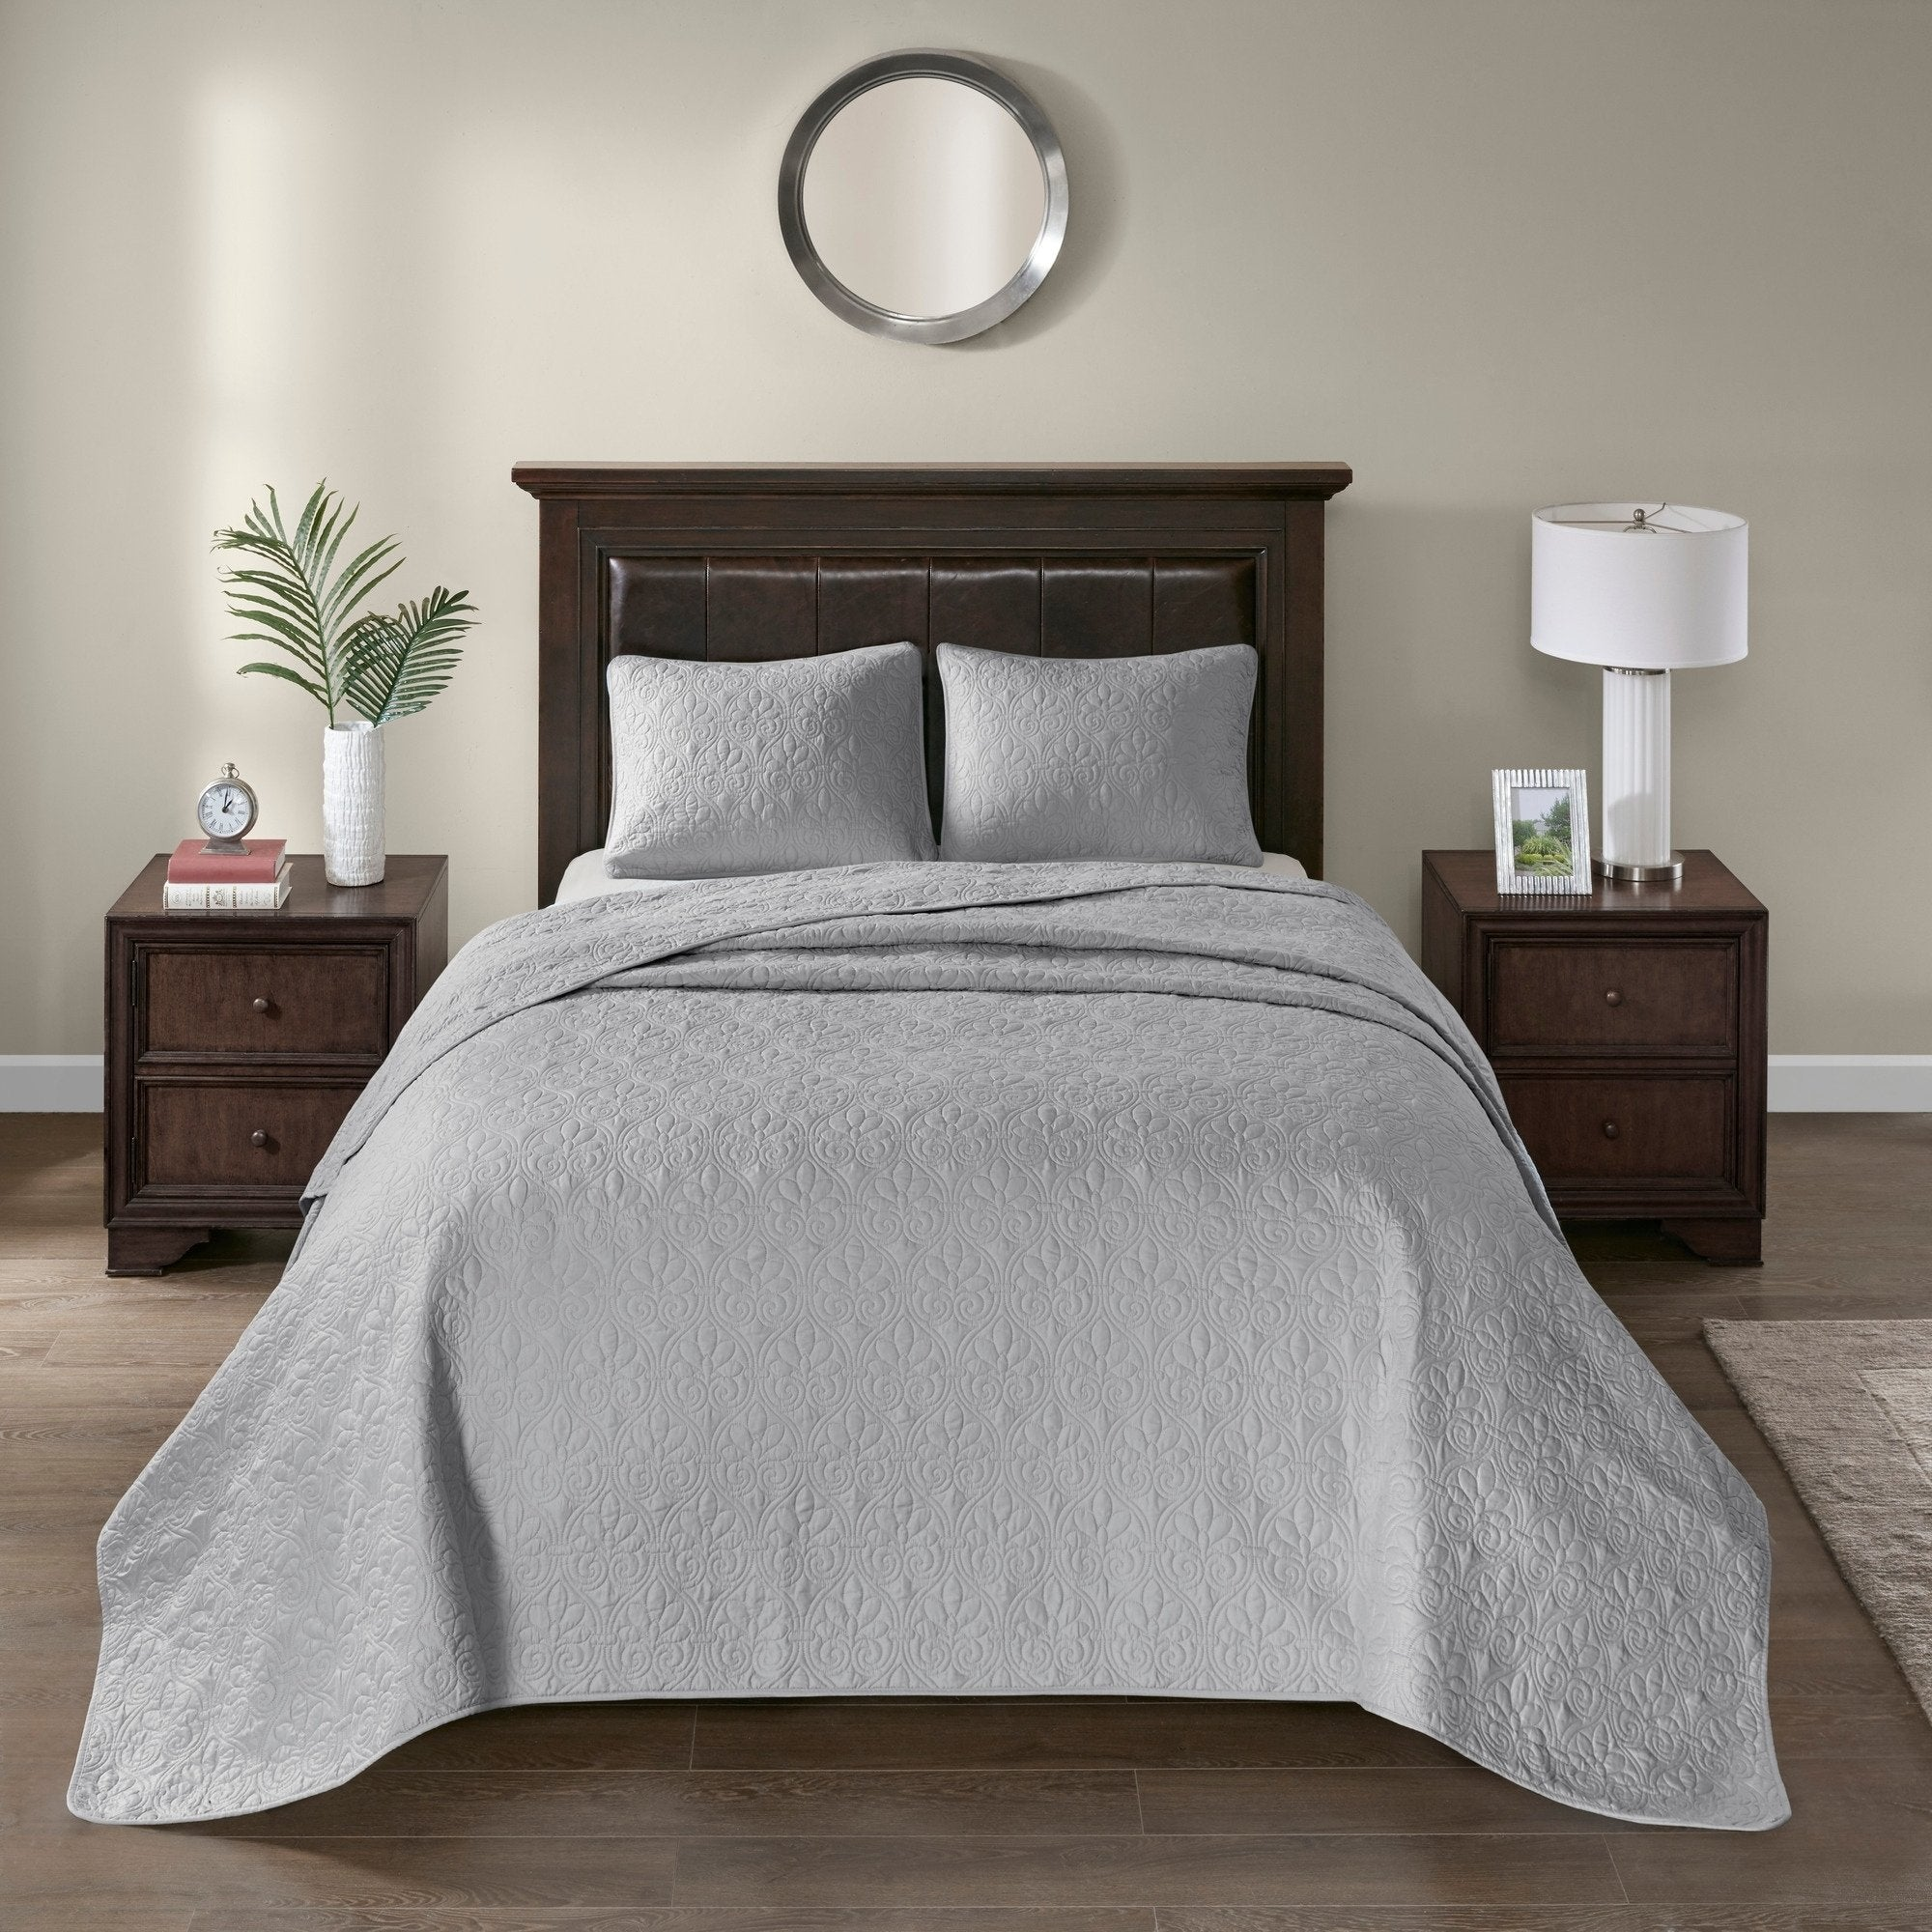 Oversized Bedspread Floor Set Solid Warm Tone Coverlet Allover Quilt Drops Over Edge Beds Microfiber